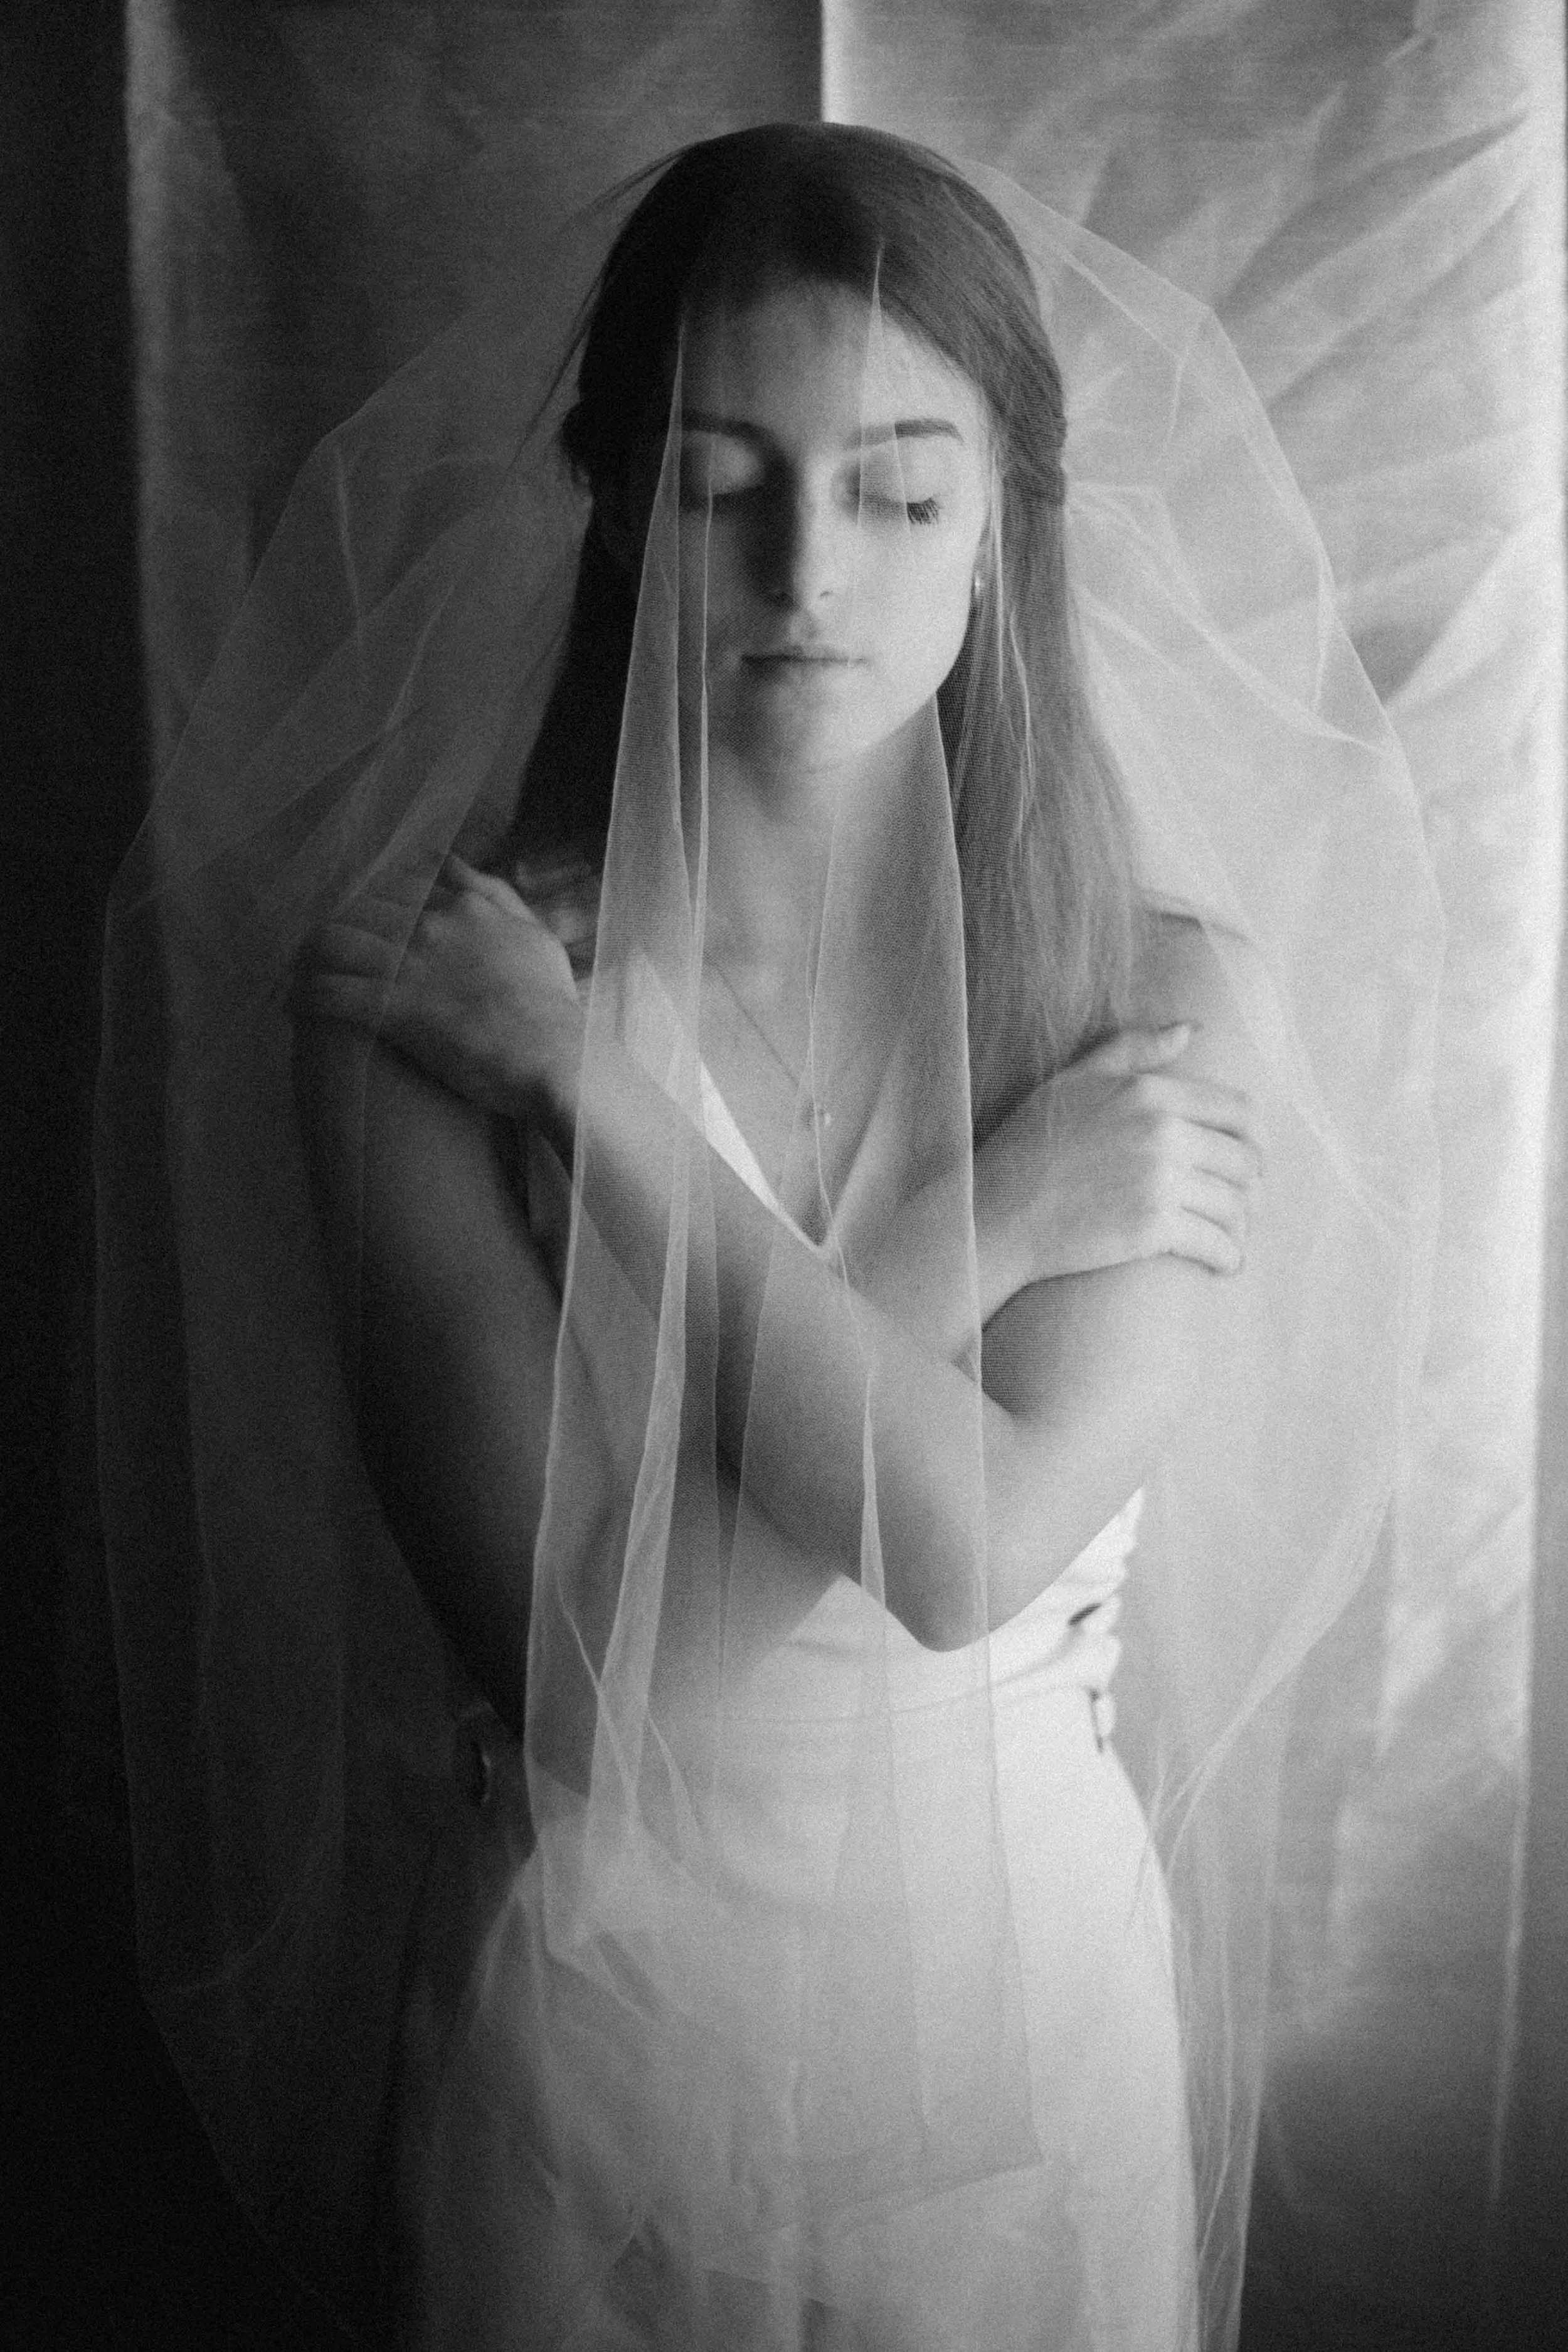 wedding dress bride vancouver photography.jpg